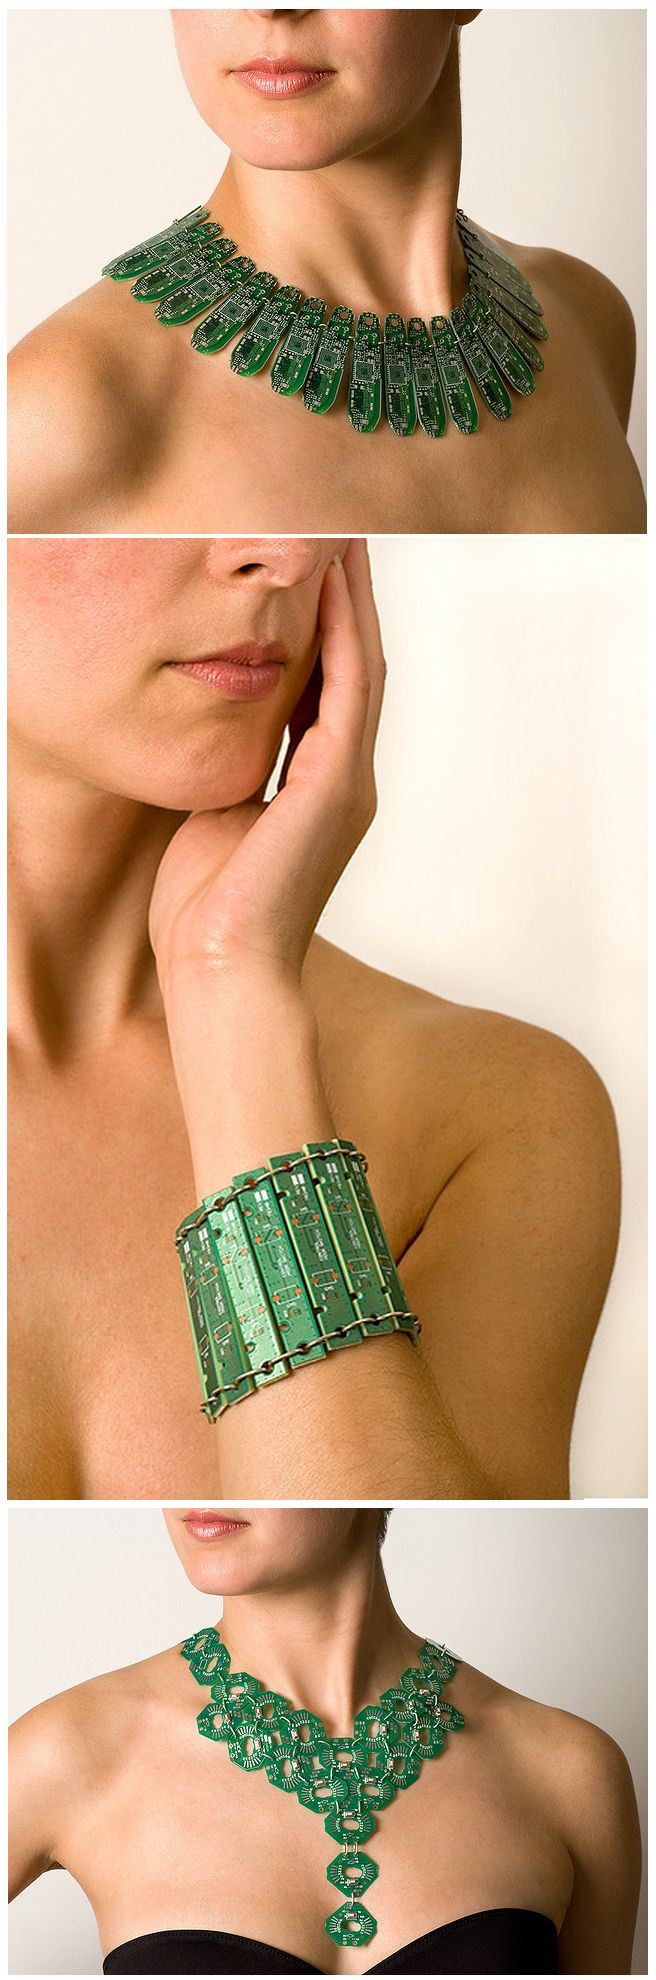 Circuit Board Jewellery Made by Christophe Koch